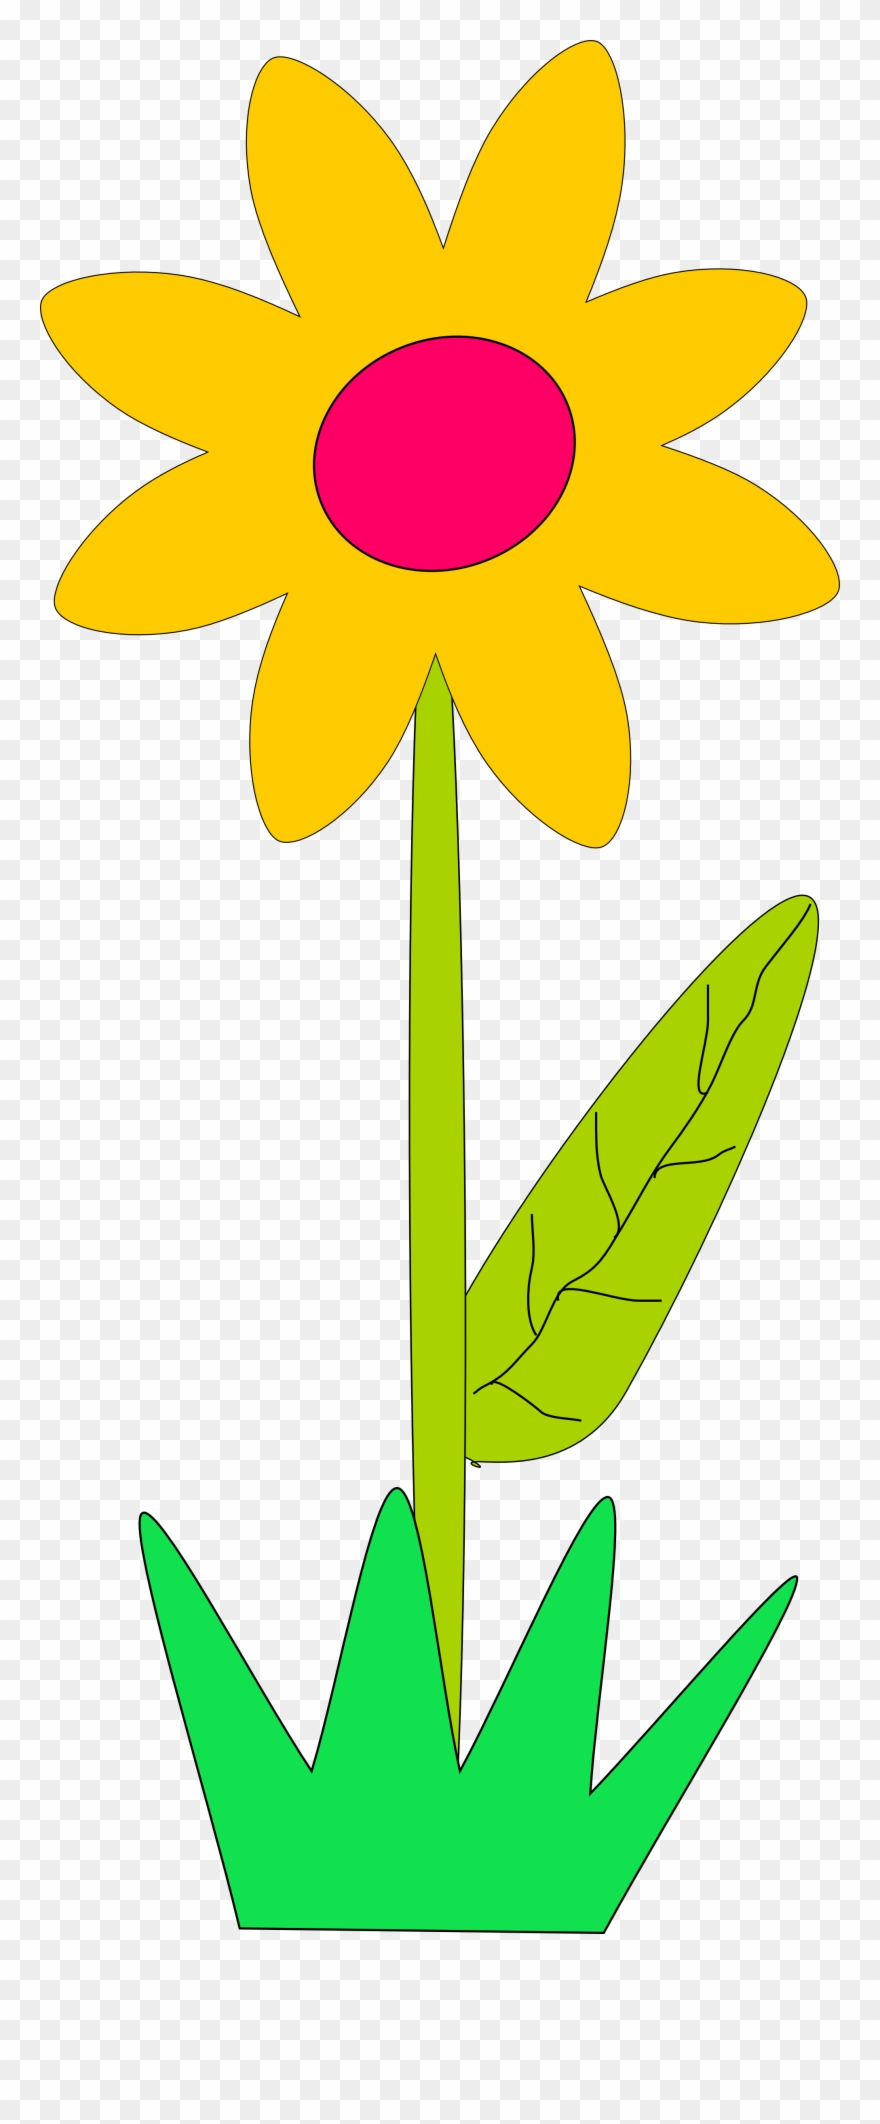 Big flowers clipart png free download Big Flower Clip Art Cliparts - Spring Flowers Clip Art - Png ... png free download